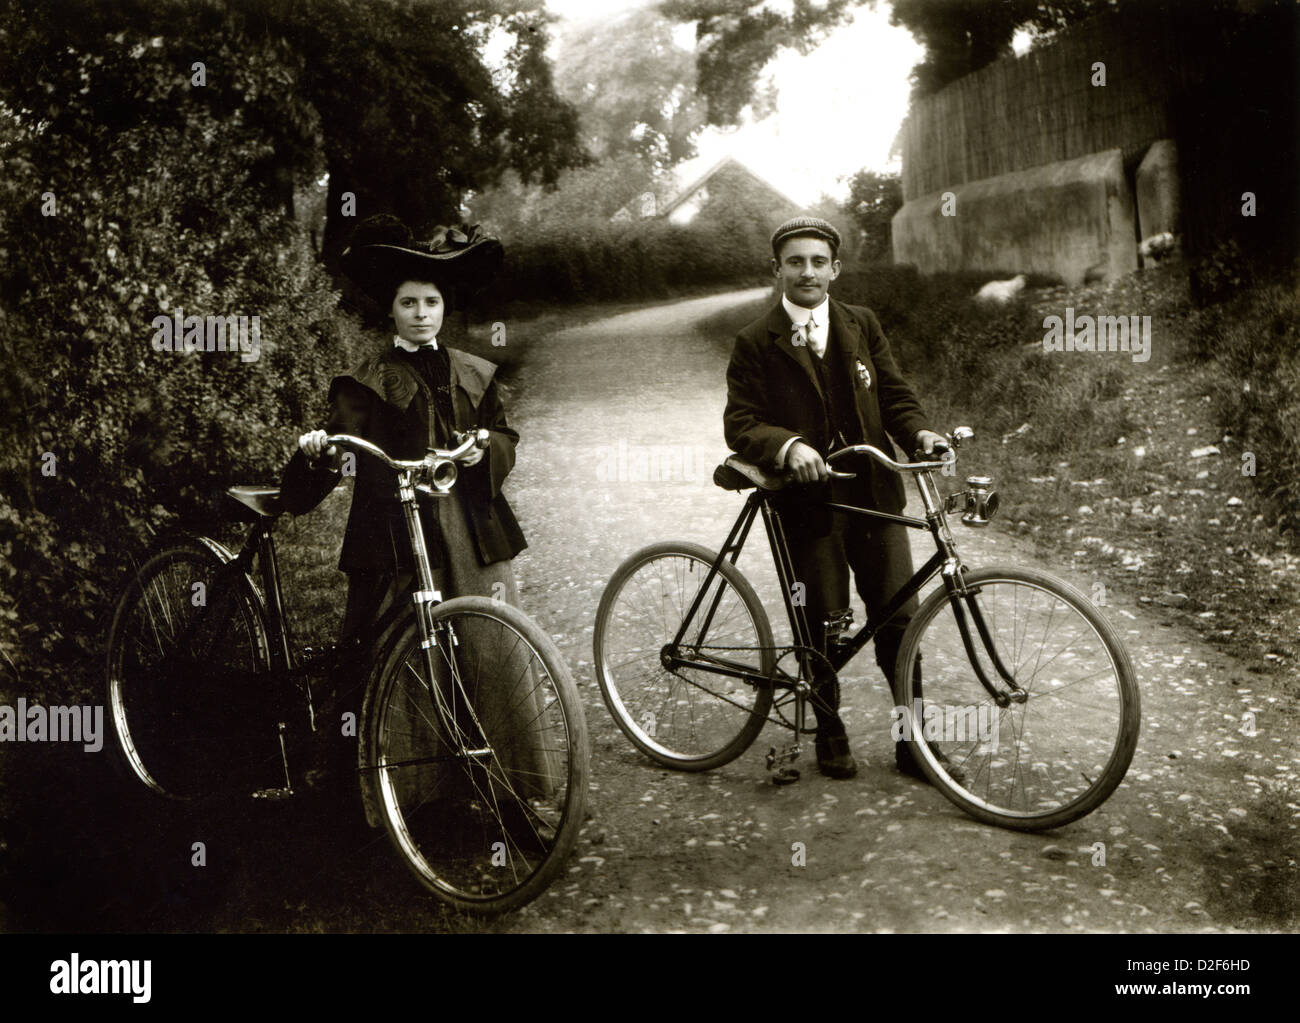 Vintage cycling, man and woman cyclists from turn of century with bikes - Stock Image